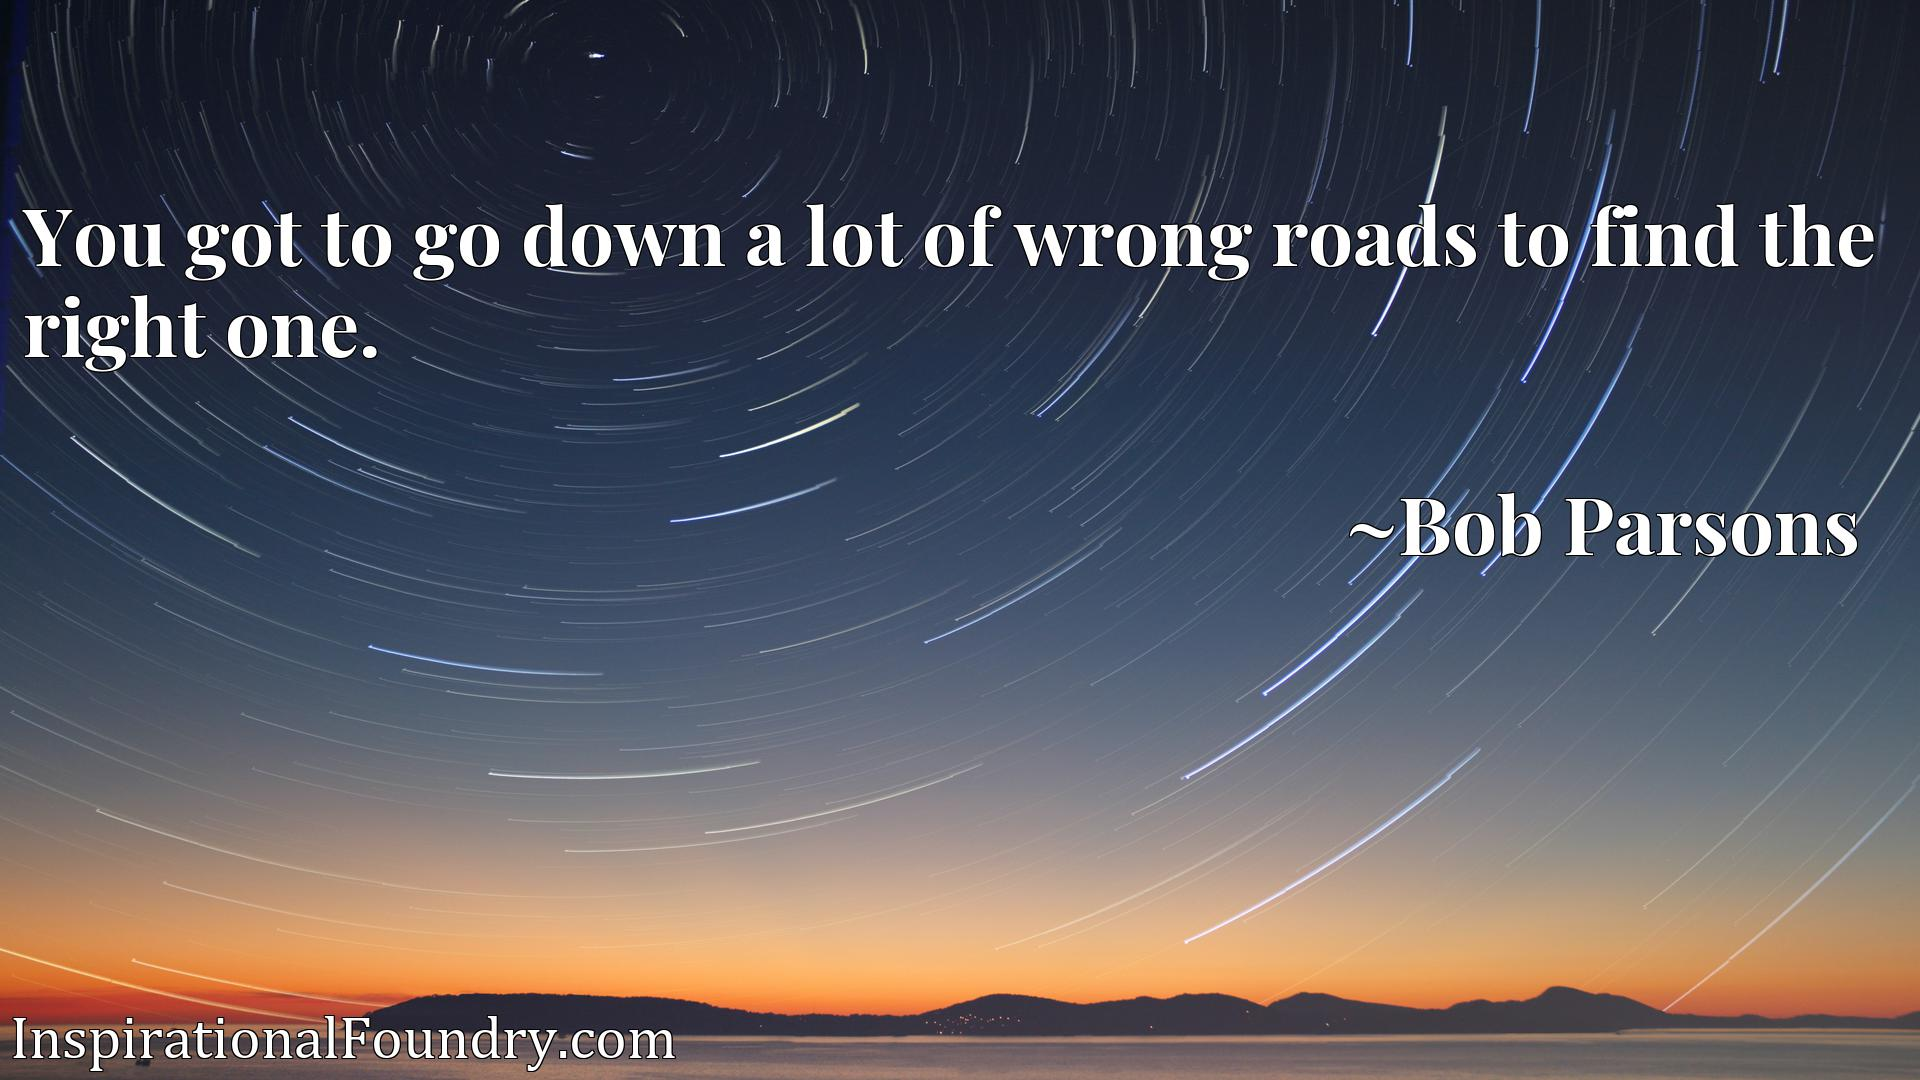 You got to go down a lot of wrong roads to find the right one.